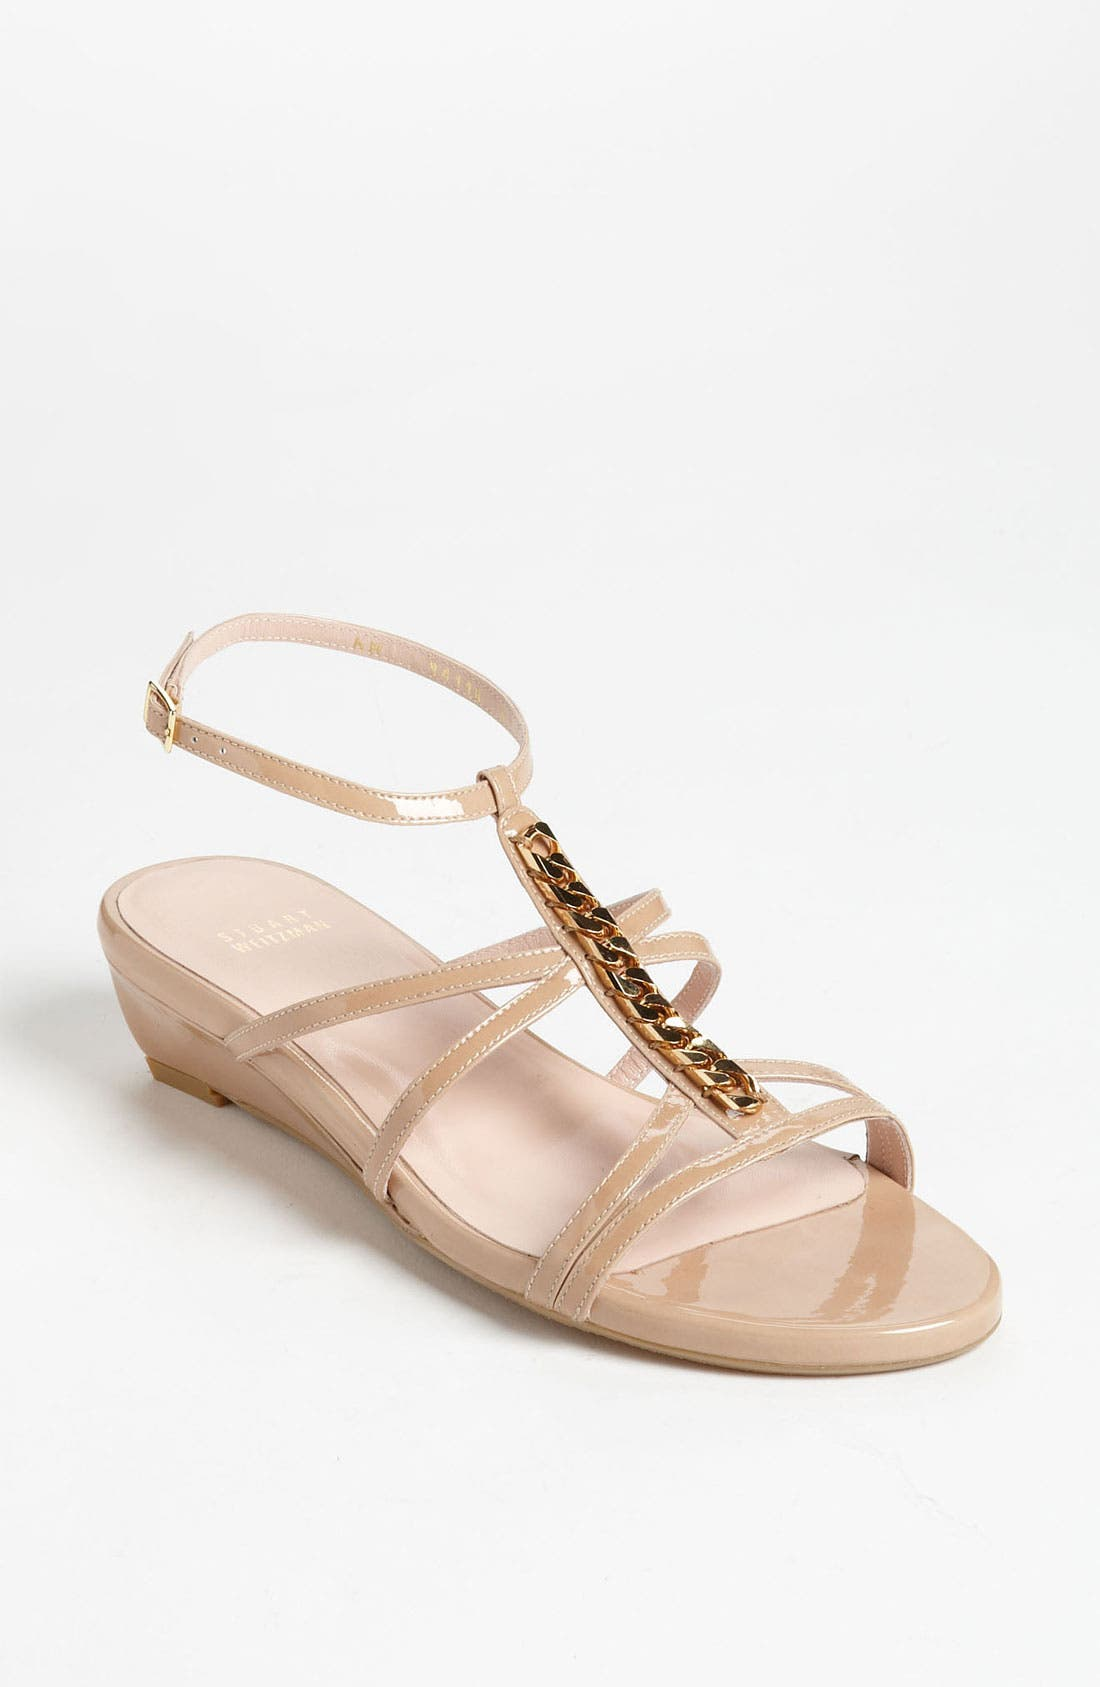 Alternate Image 1 Selected - Stuart Weitzman 'Tiffy' Sandal